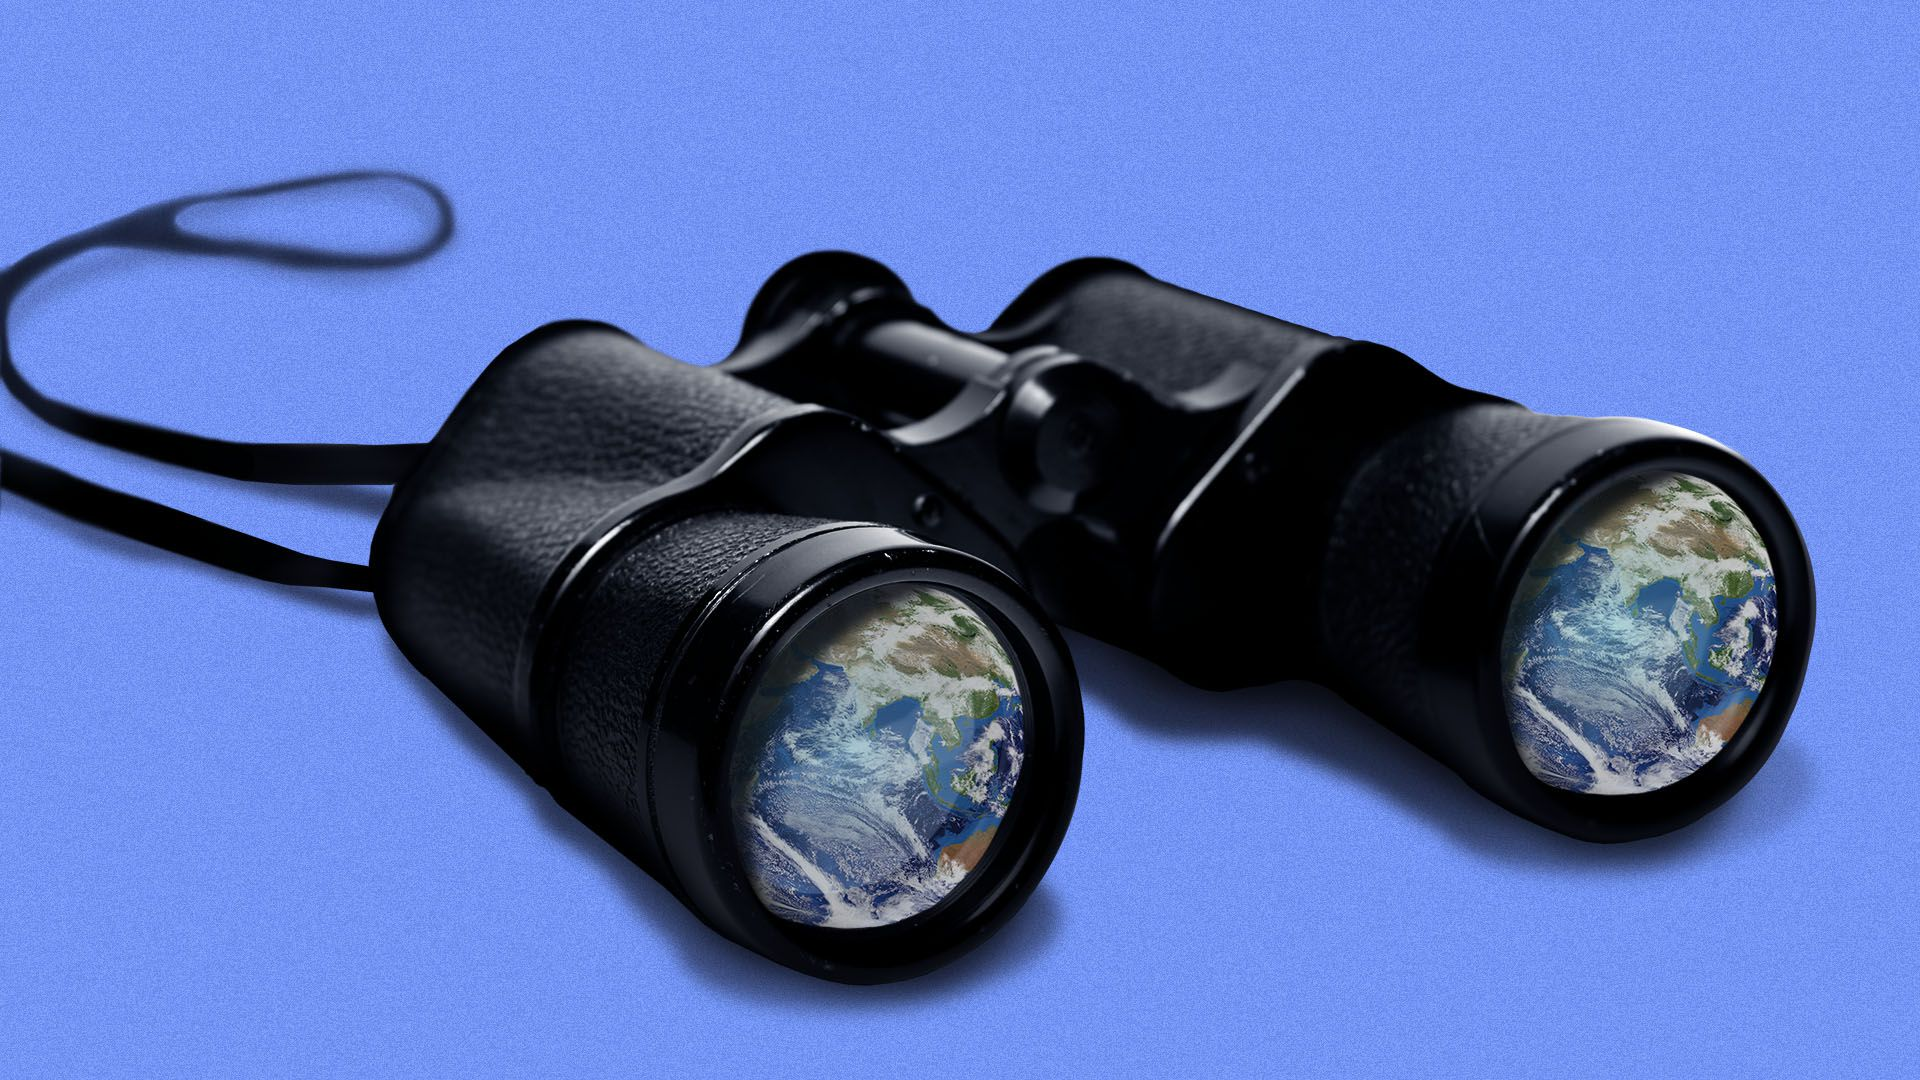 Illustration of a pair of binoculars with the earth reflected in the lenses